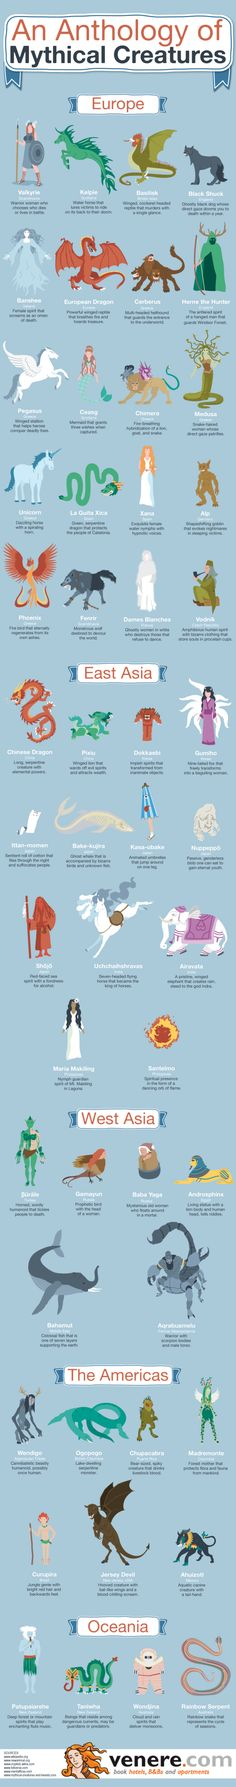 Mythology + Religion: An Anthology of Mythological Creatures Infographic